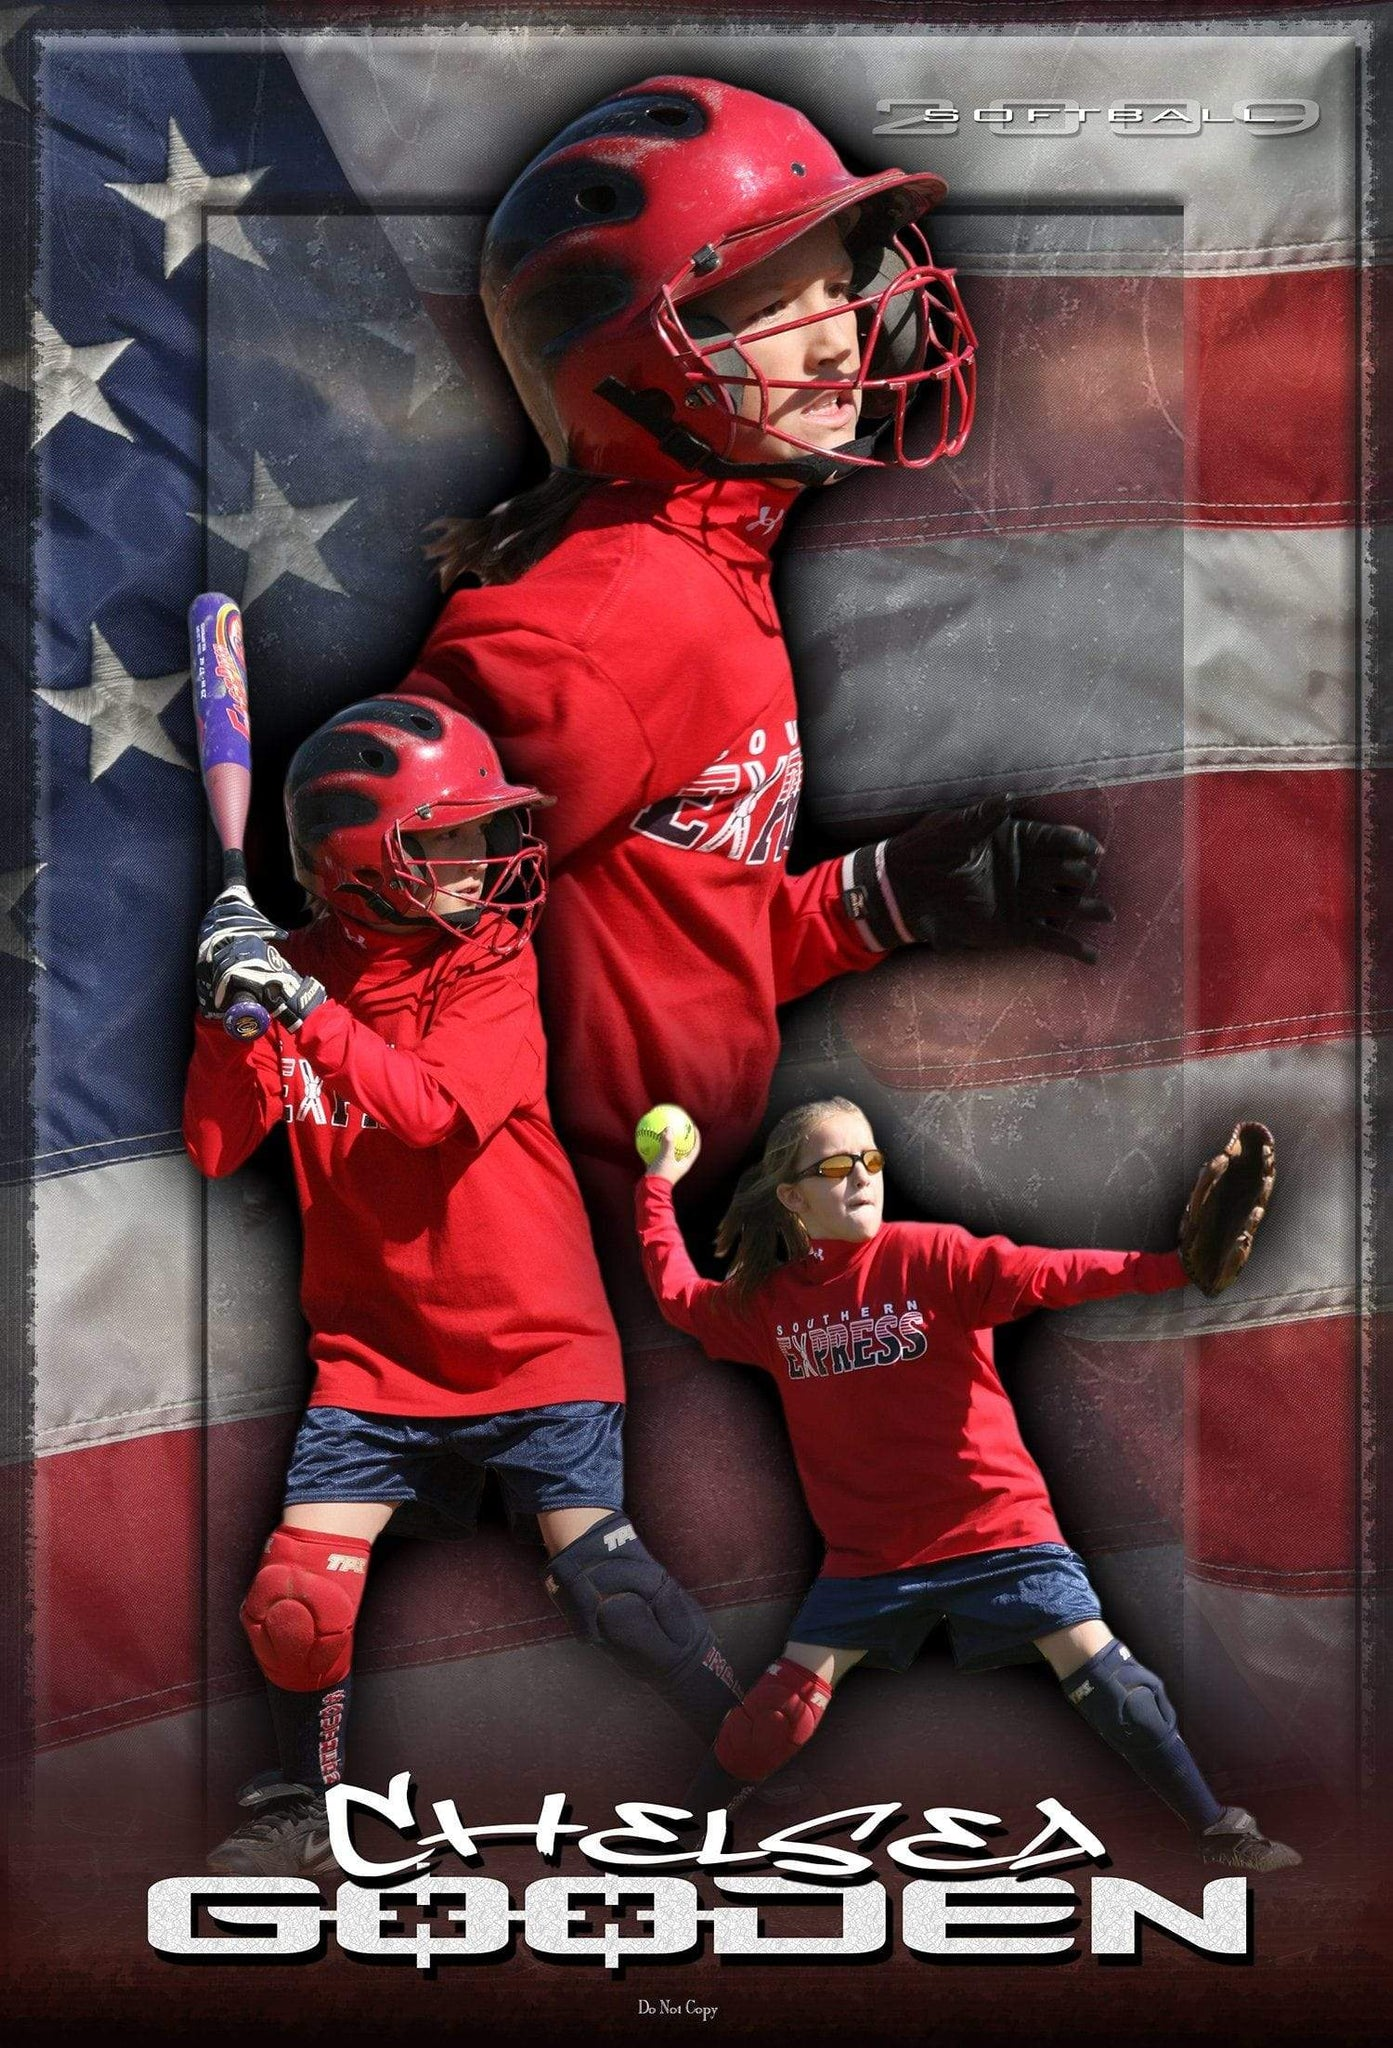 USA v.2 - Action Extraction Poster/Banner Downloadable Template Photo Solutions PSMGraphix